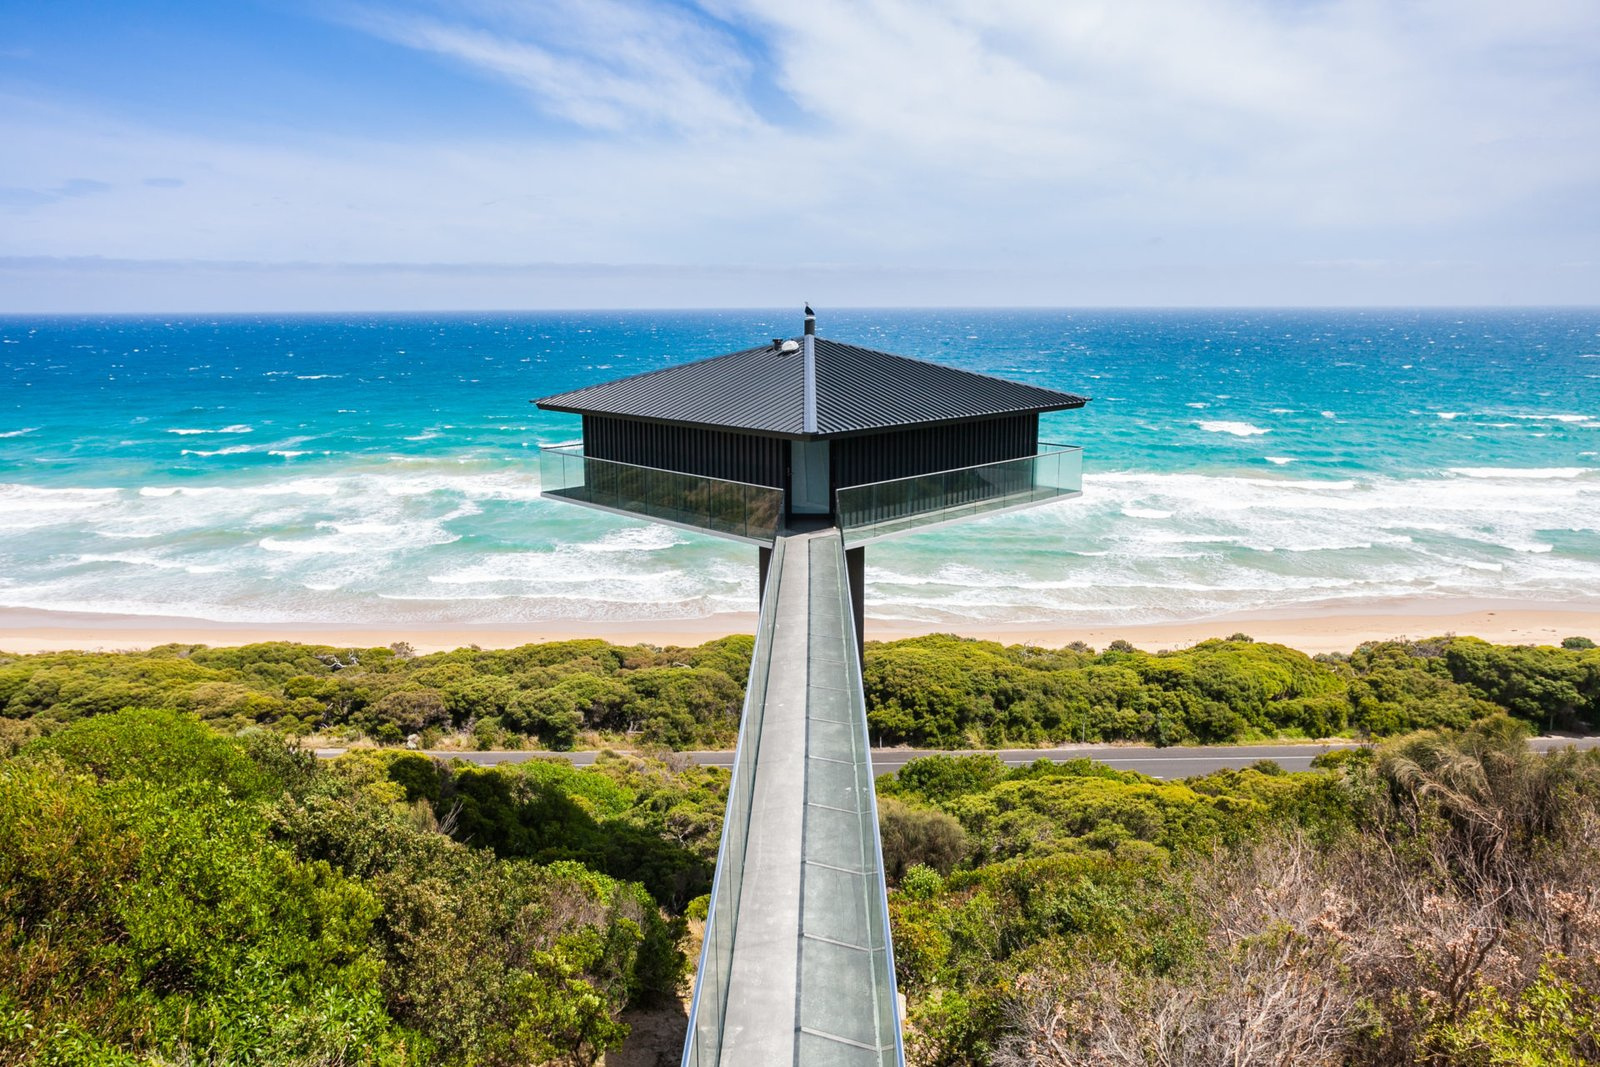 Rumored to be one of the most photographer homes on The Great Ocean Road, this house is suspended 40 meters above Fairhaven Beach. Designed F2 Architecture, the house balances atop a concrete platform supported by a 13-meter high plylon, accessible via a narrow bridge.  Photo 3 of 10 in 10 Cliffside Destinations That Will Make You Feel on Top of the World